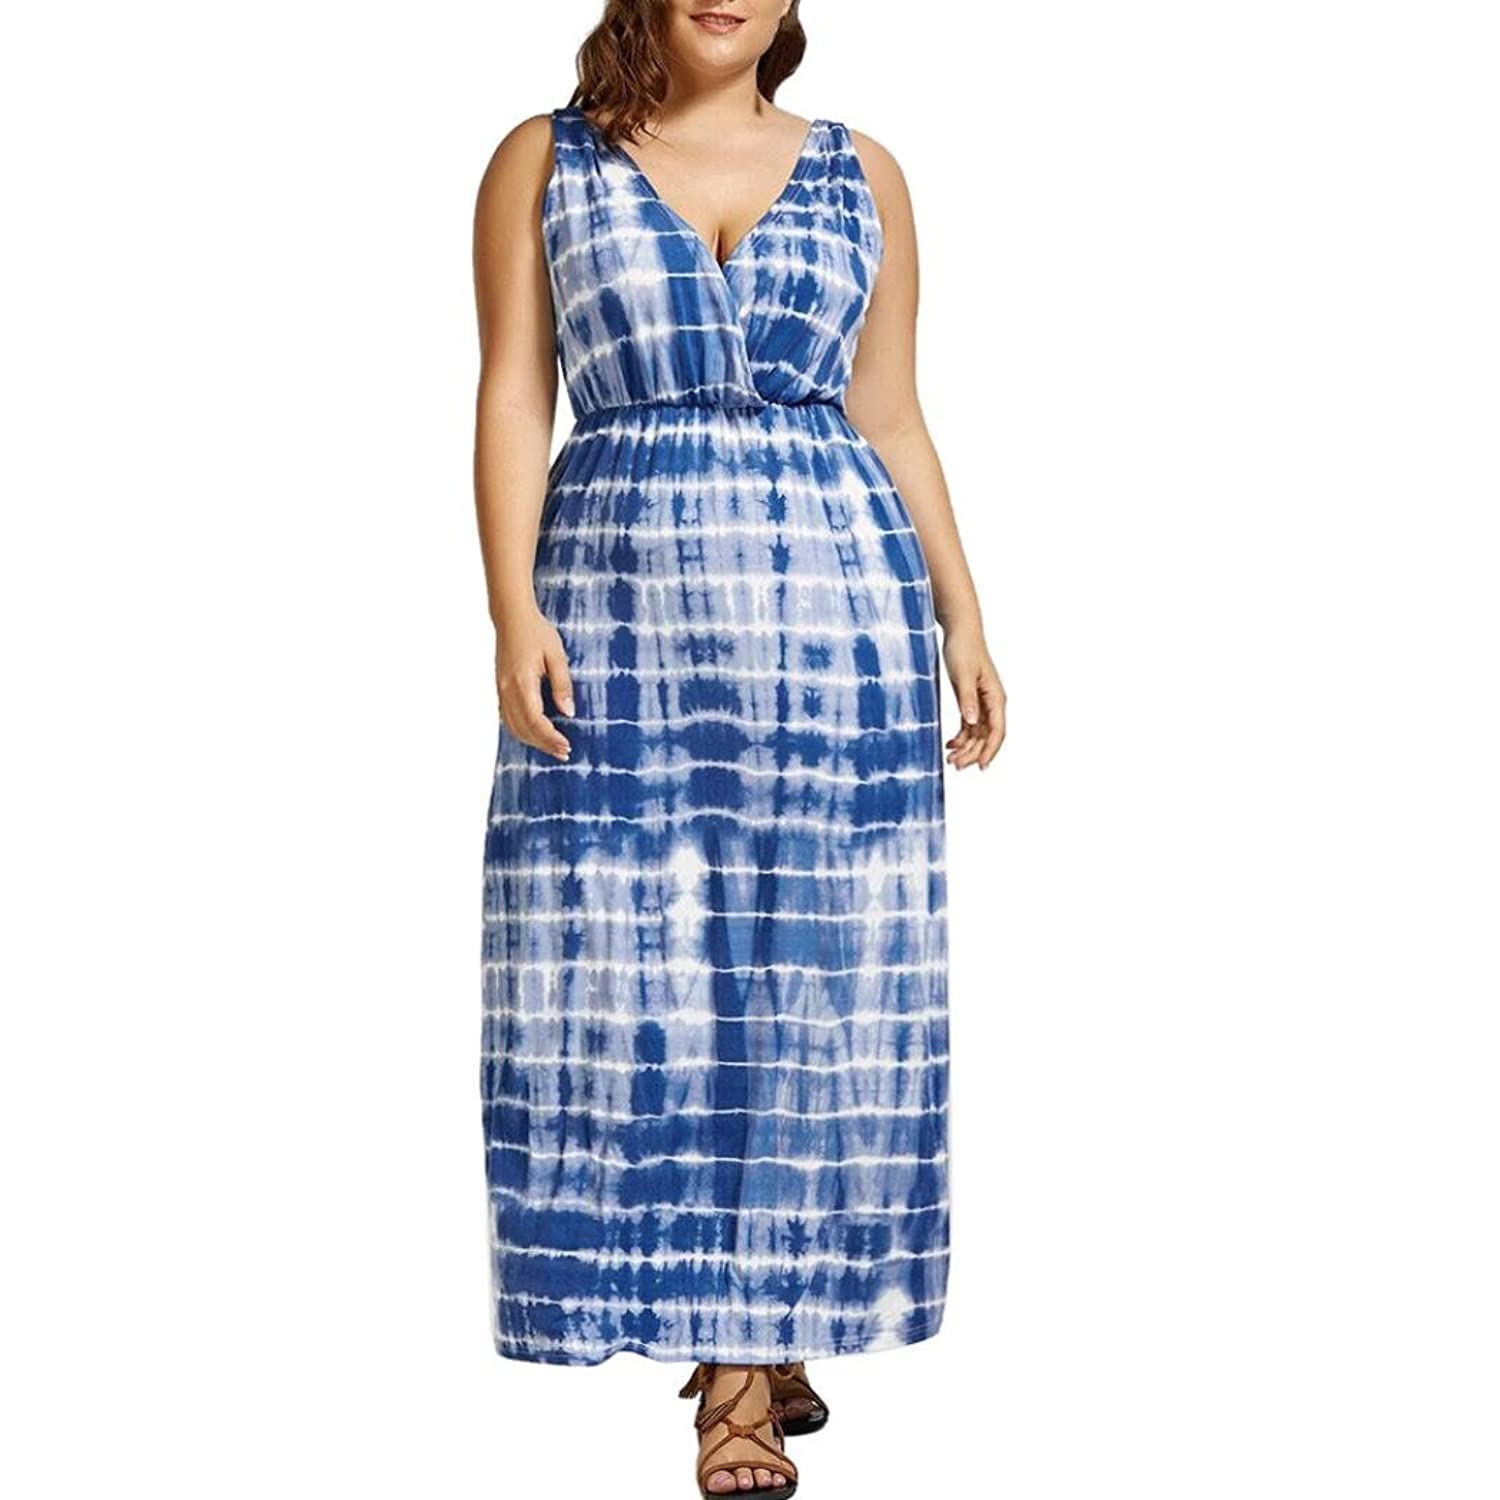 a636b6de1b Minisoya Plus Size Women Casual V-Neck Sundress Summer Loose Tie-Dye Ombre Printed  Backless Party Beach Long Dress at Amazon Women s Clothing store